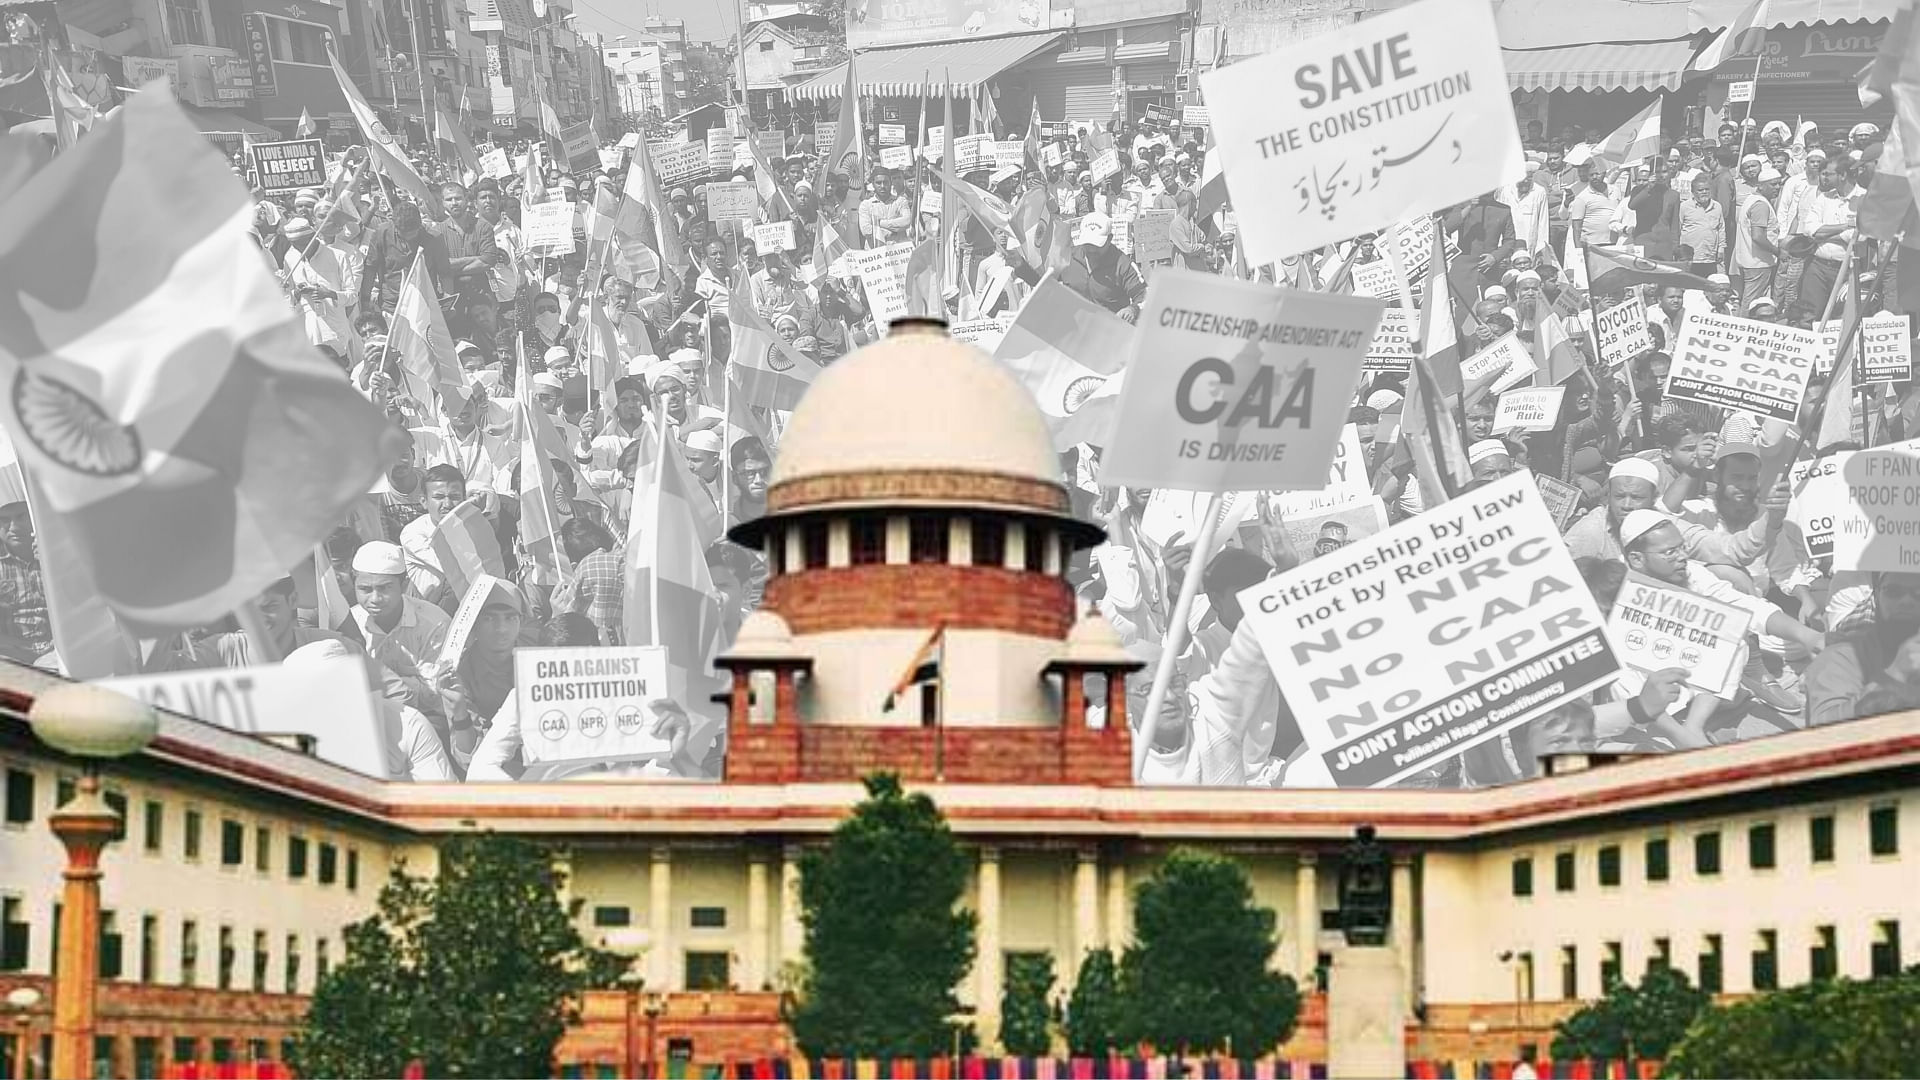 No Stay, HCs Restrained & More: What SC Said on 144 CAA Pleas